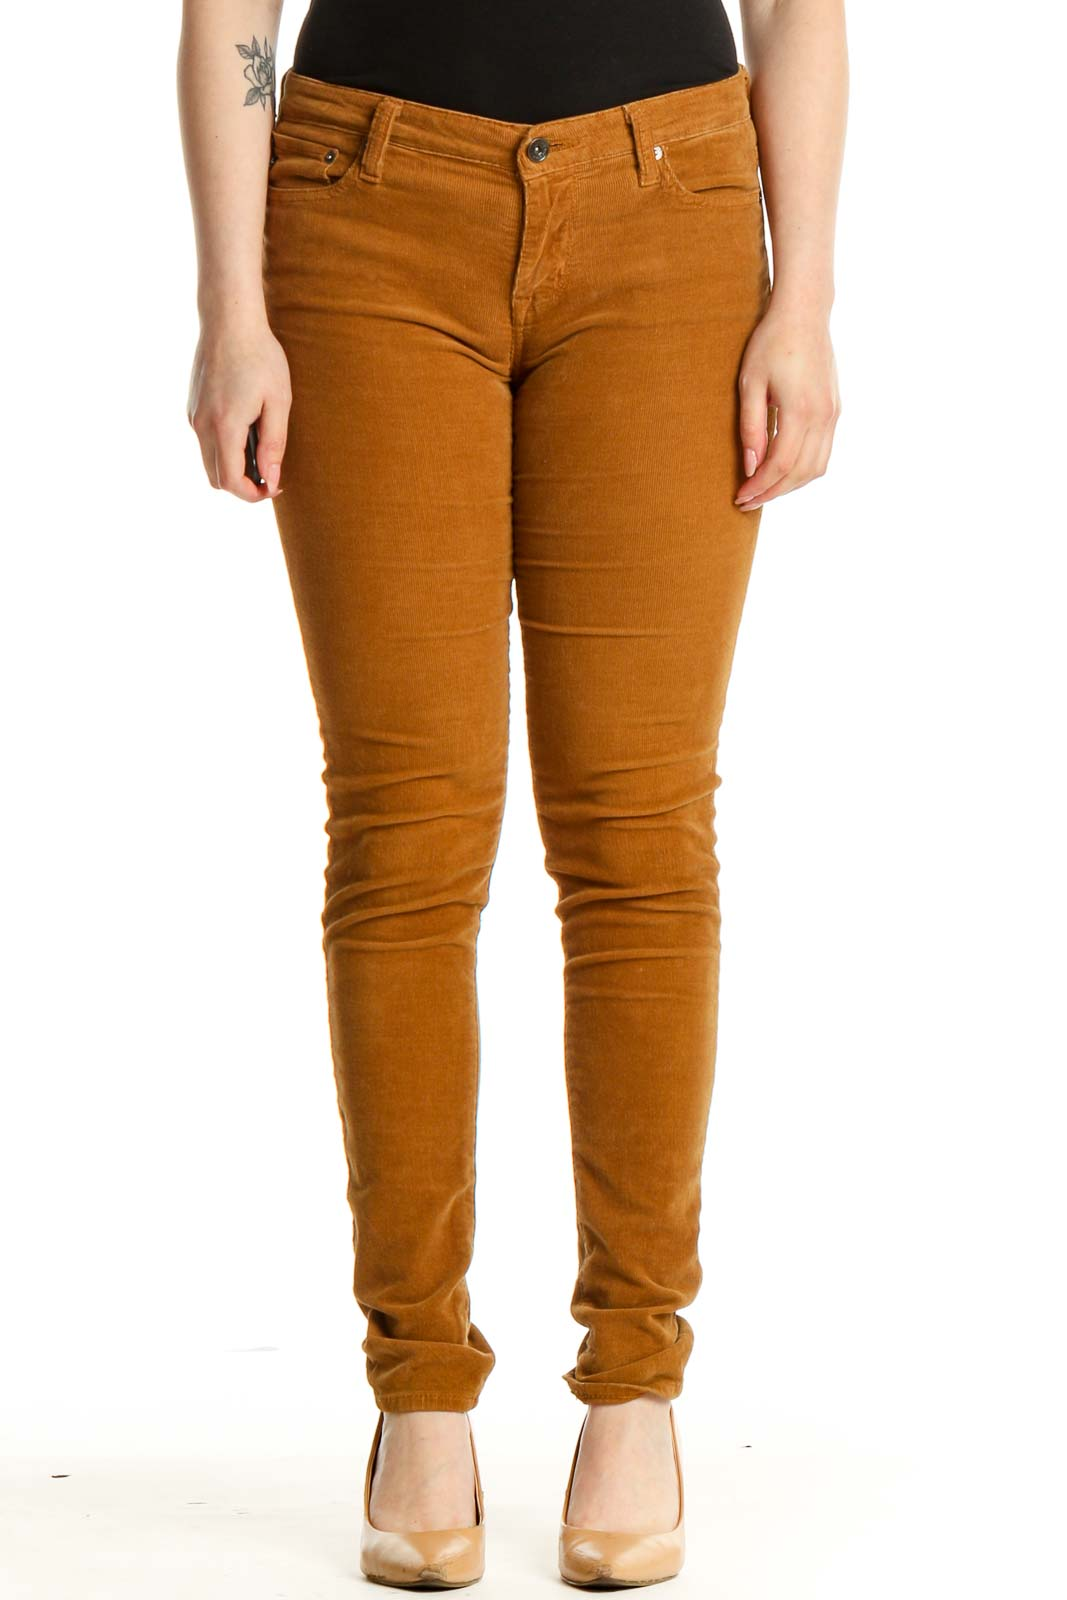 Orange Solid Casual Pants Front